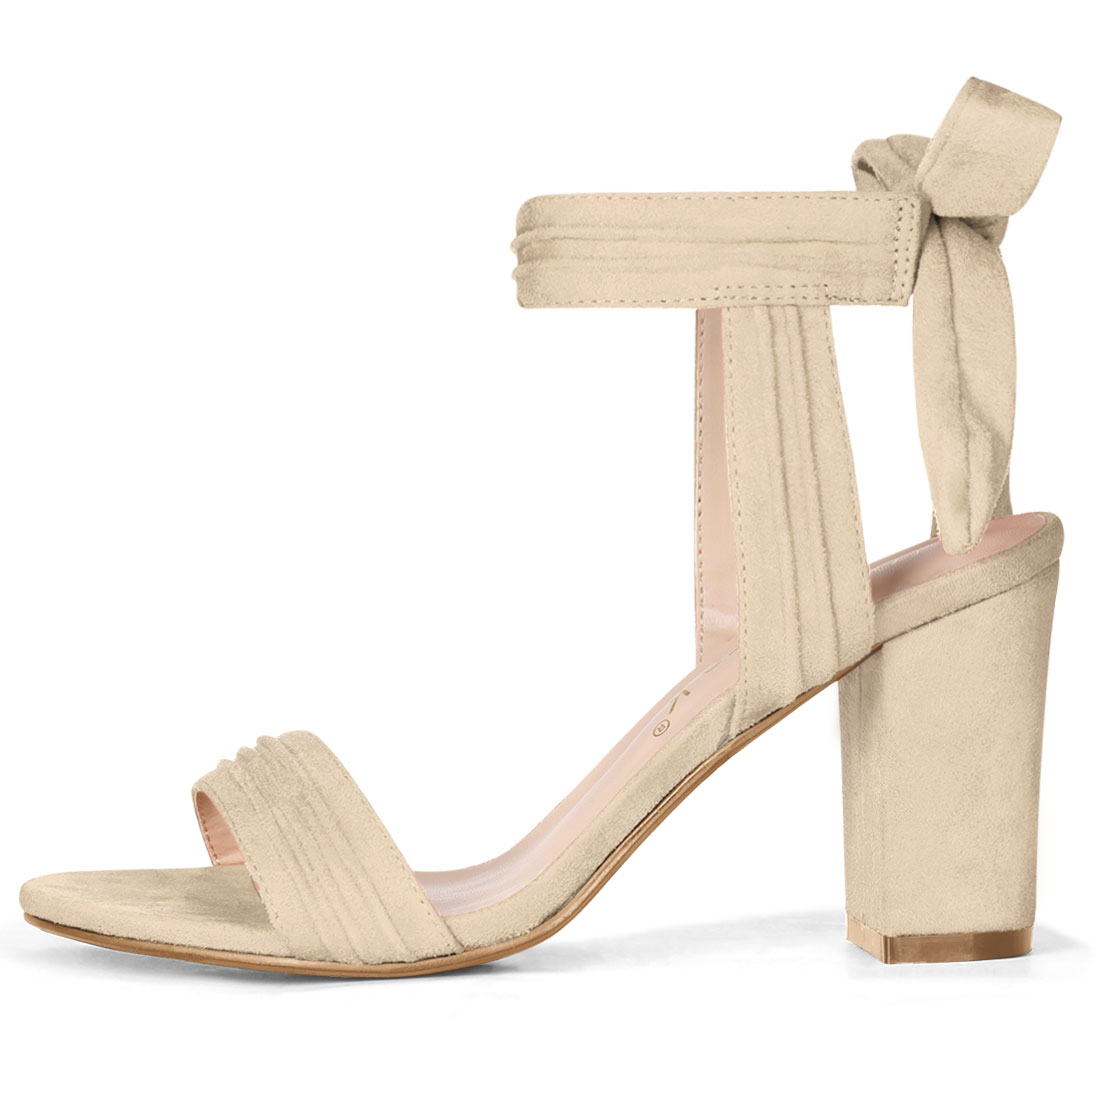 Unique Bargains Women's Ankle Tie Open Toe Block Heel Sandals Beige (Size 9.5) - image 5 of 7